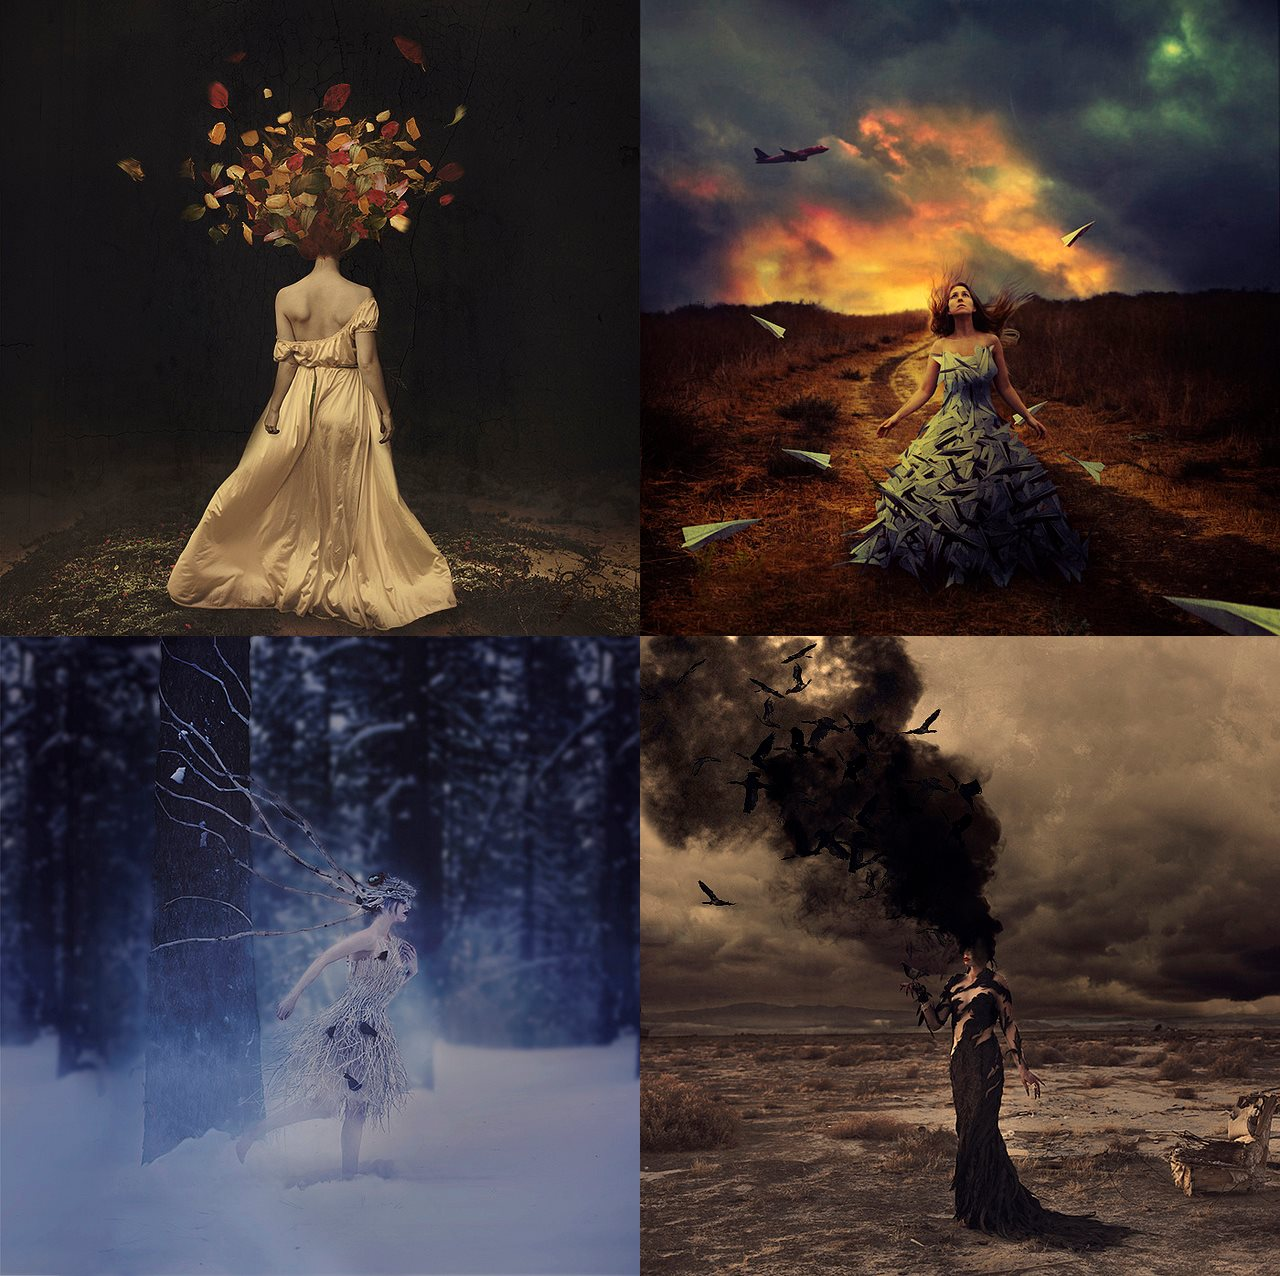 Photographs by Brooke Shaden